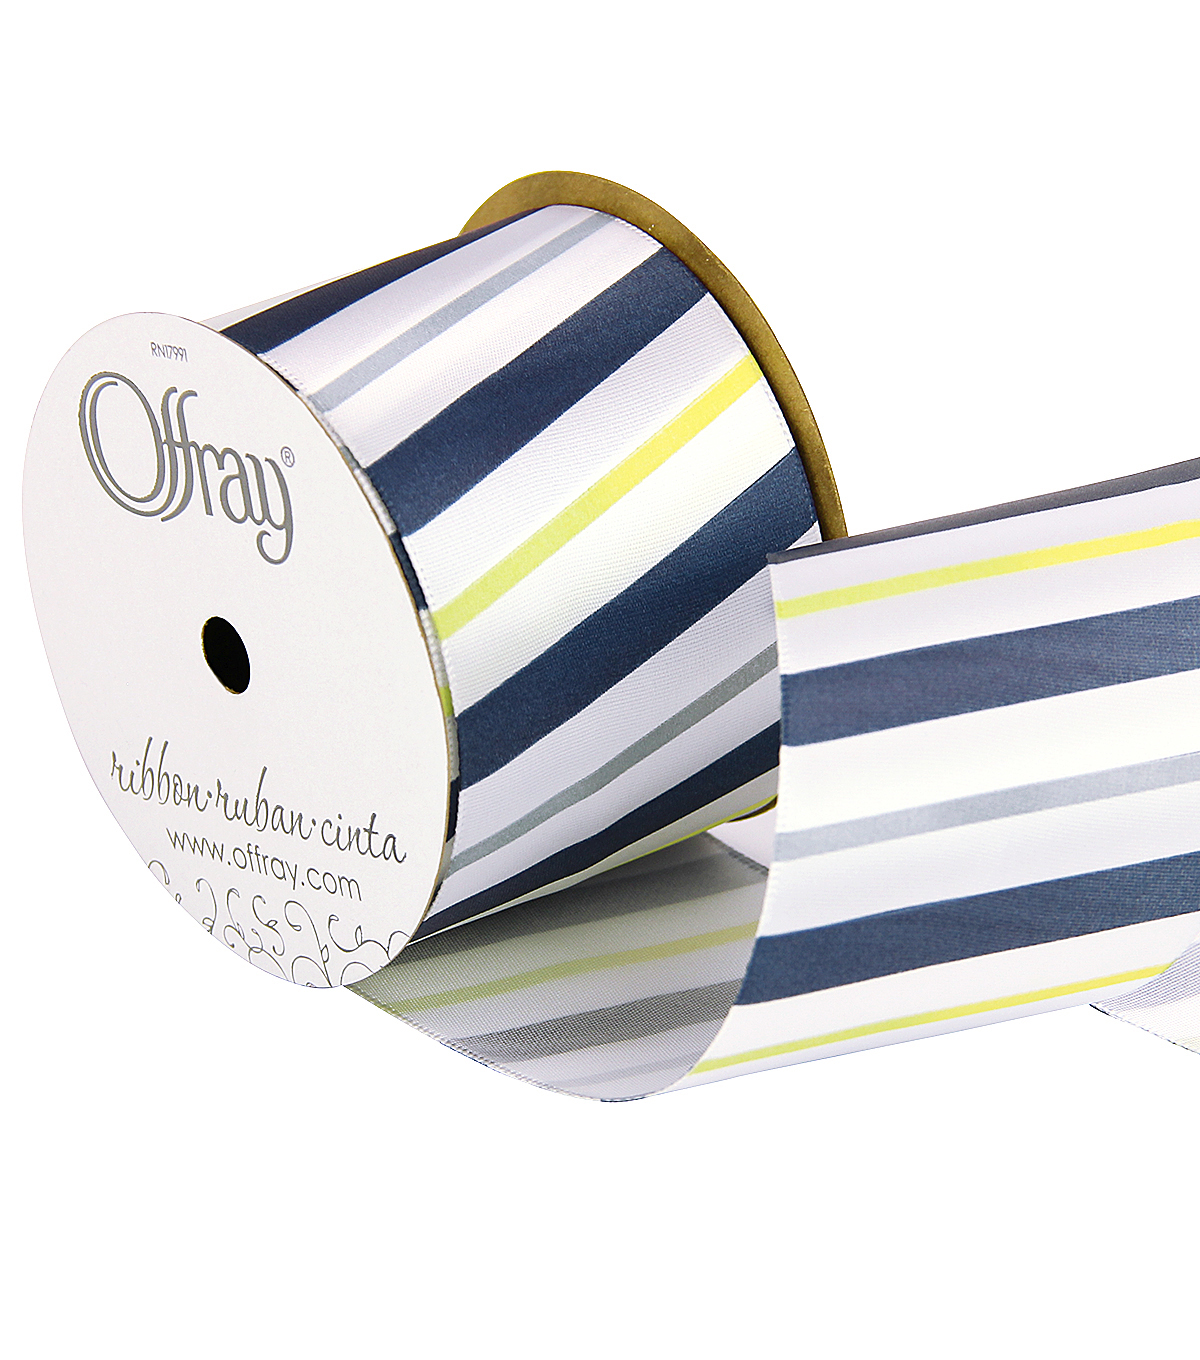 2 And One Qtr True Blue Diag Stripe Ribbon